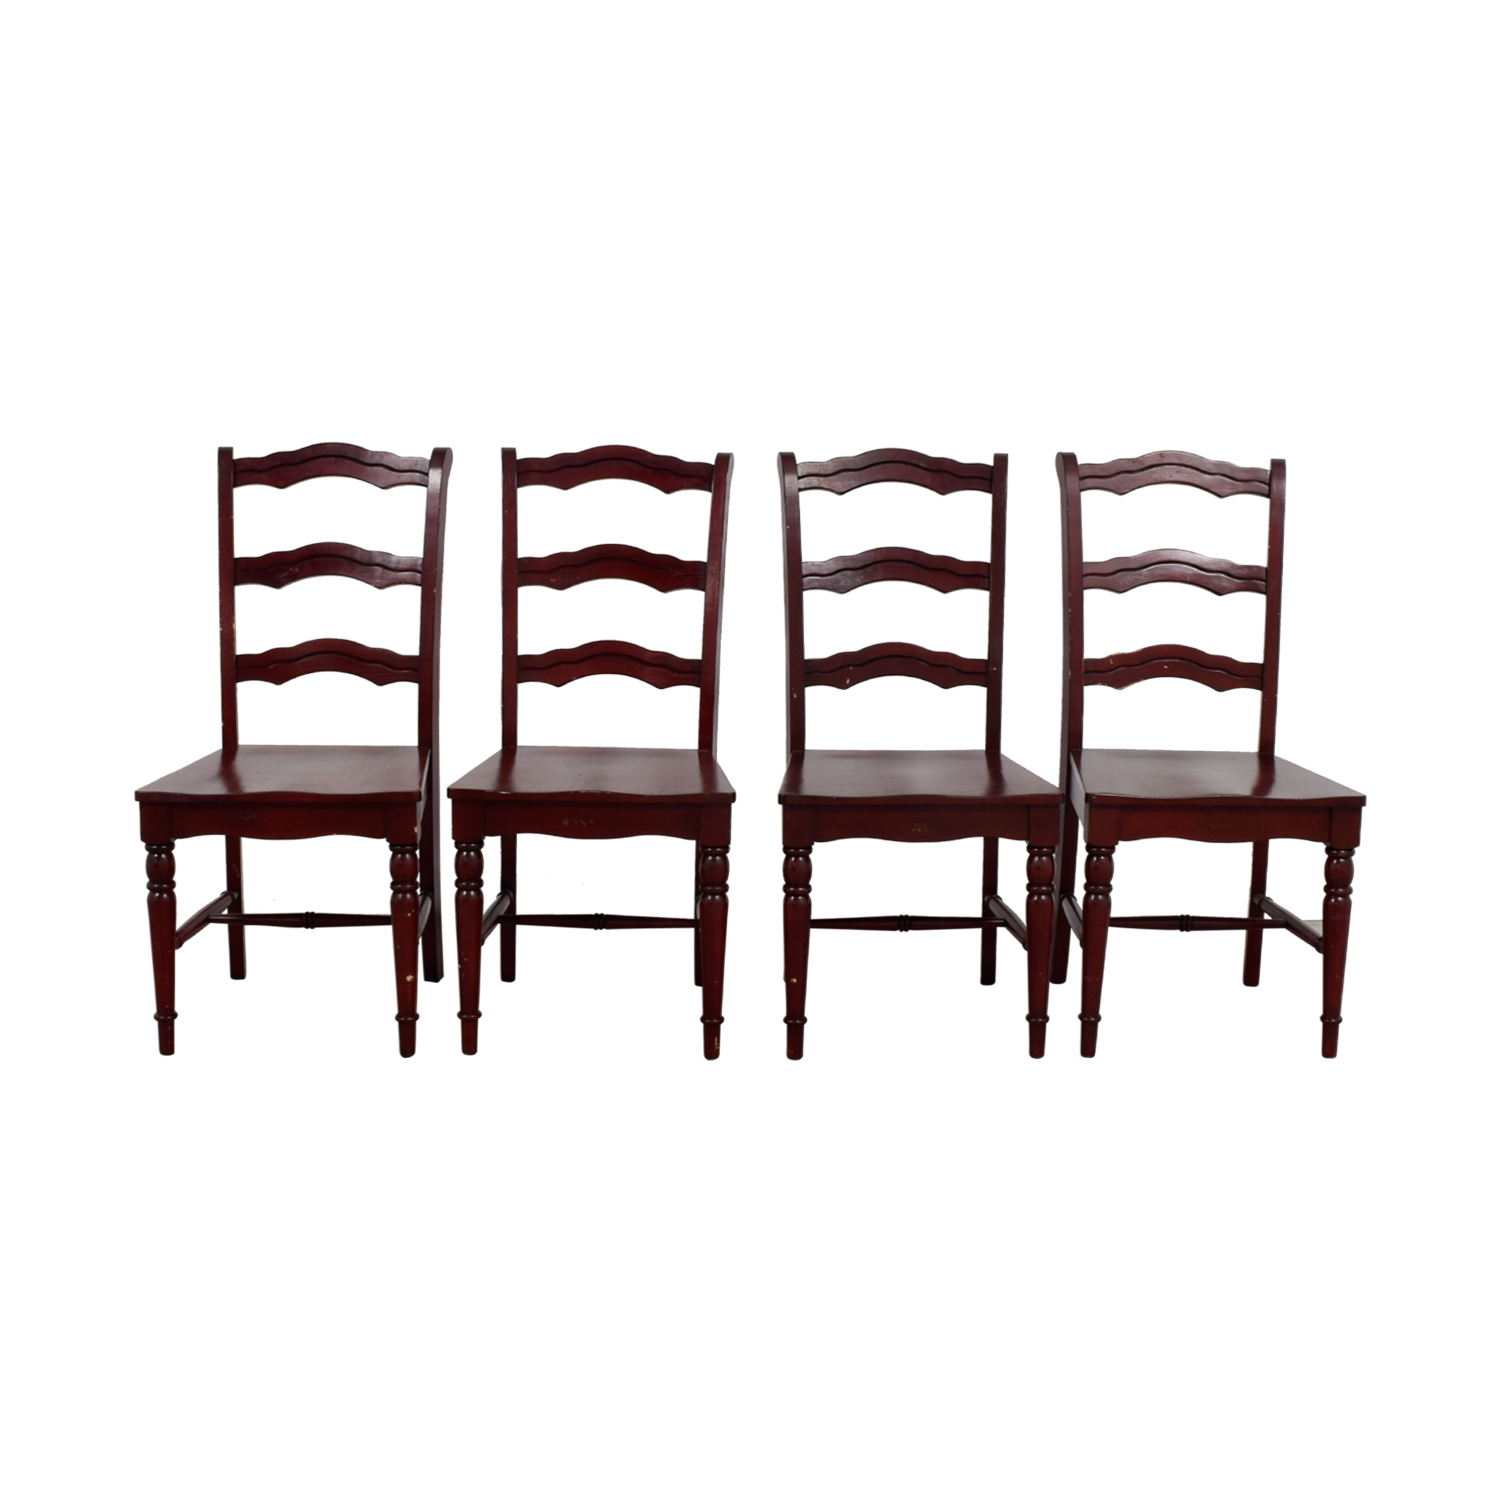 buy Pier 1 Imports Pier 1 Imports Wood Chairs online